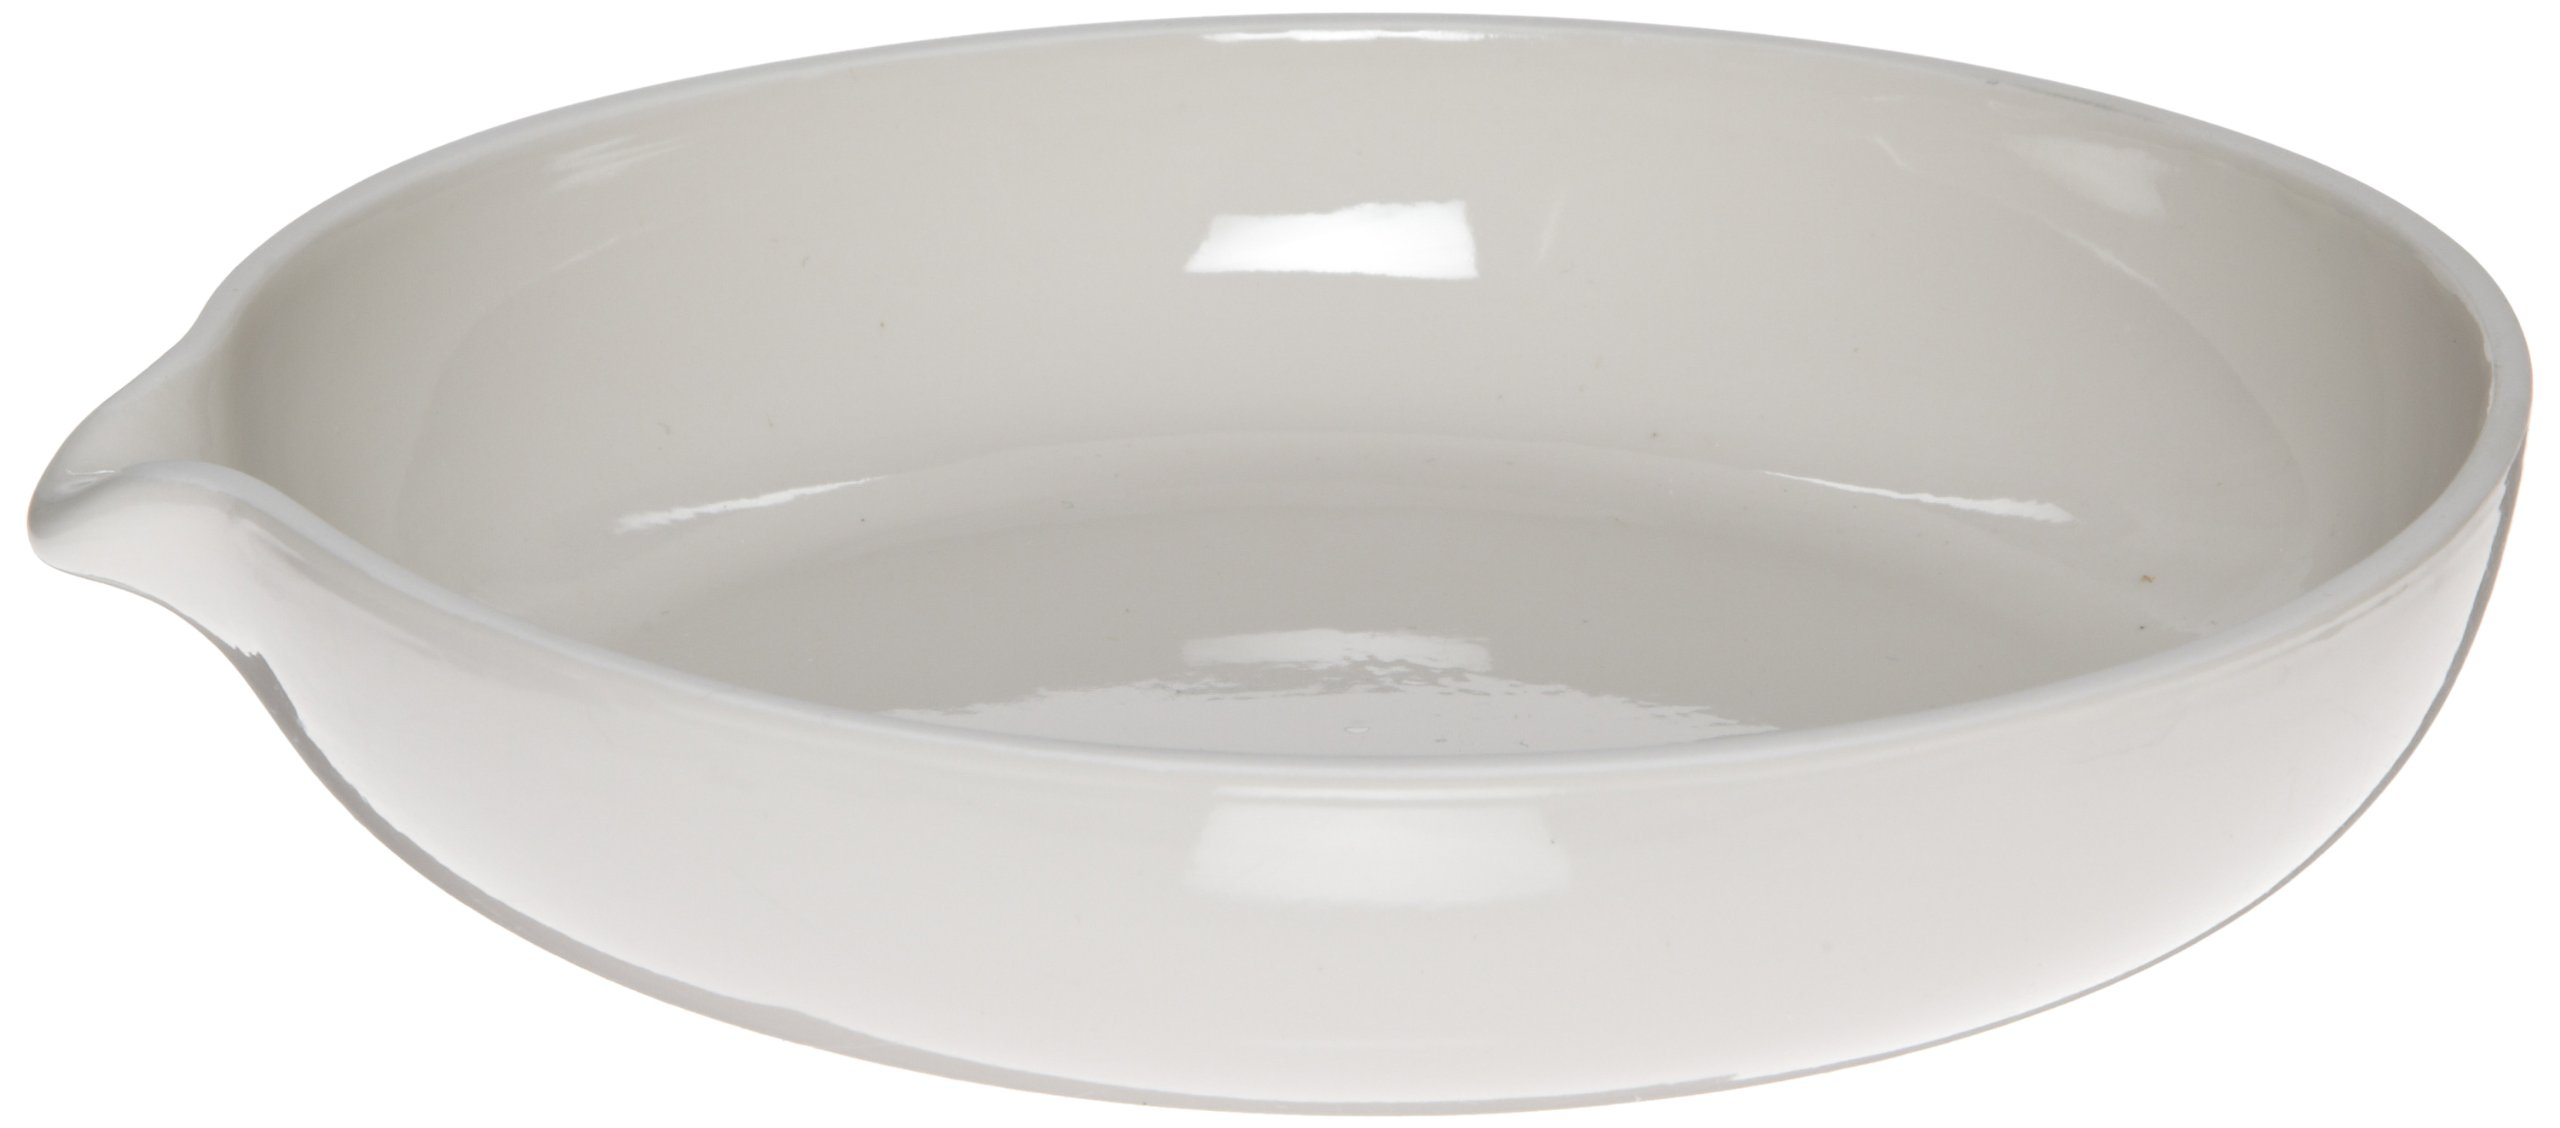 CoorsTek 60232 Porcelain Ceramic Evaporating Dish with Pouring Lip, 75mL Capacity, 90mm OD, 22mm Height, Shallow Form (Case of 18)